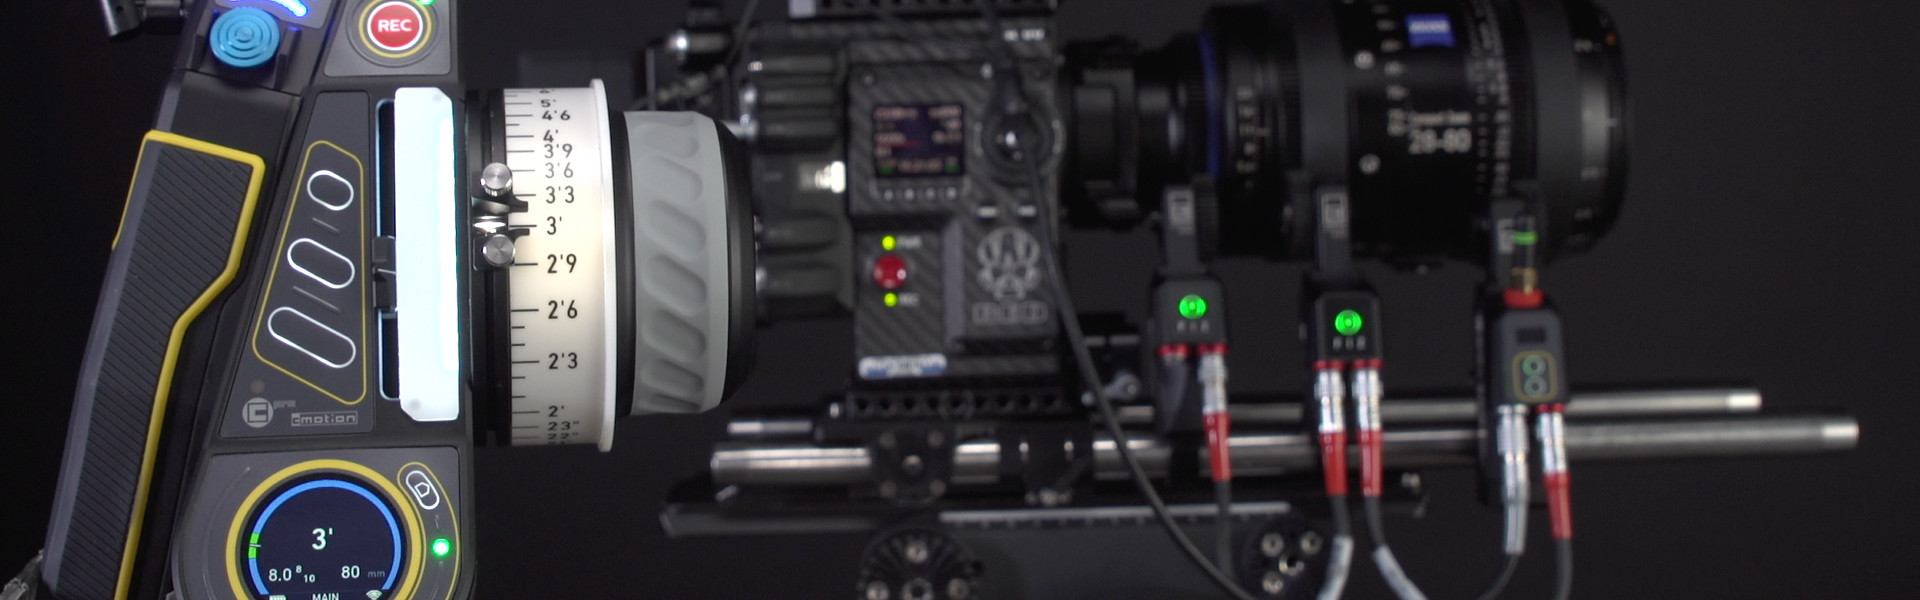 Header image for article At the Bench: cmotion cPRO Wireless Focus System